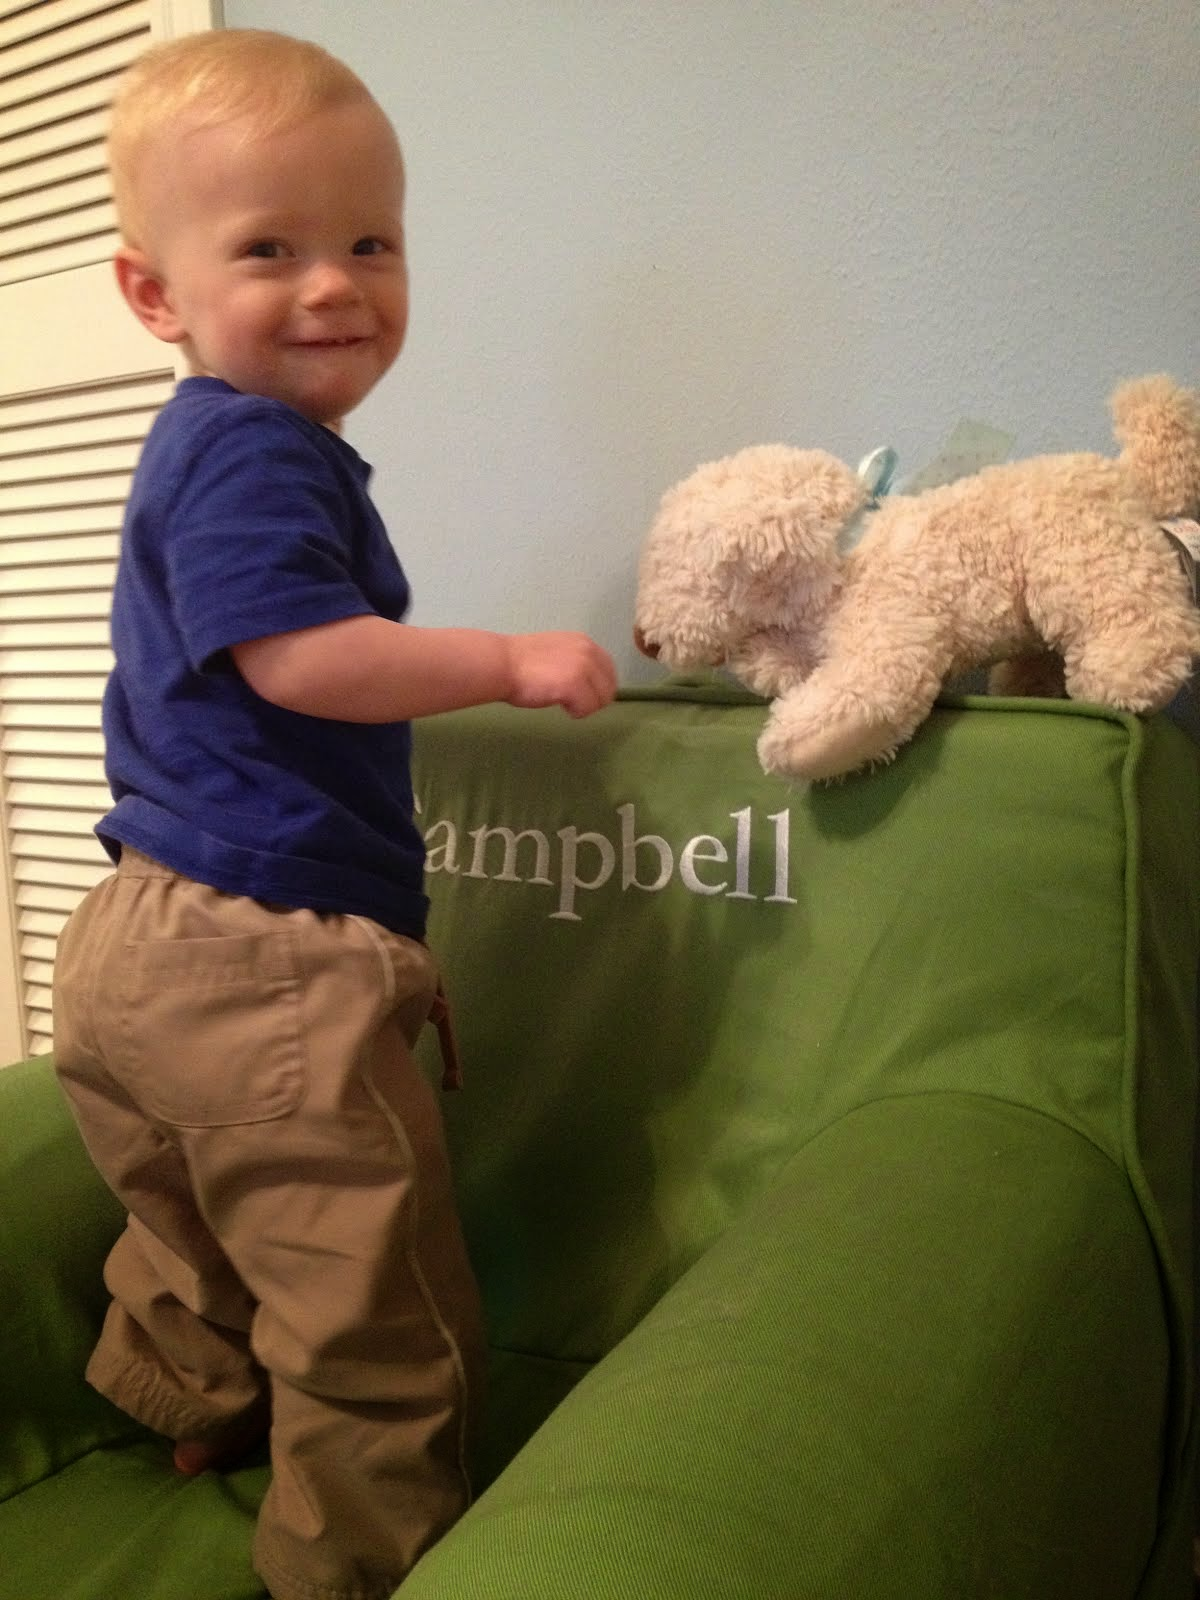 Campbell at 11 months